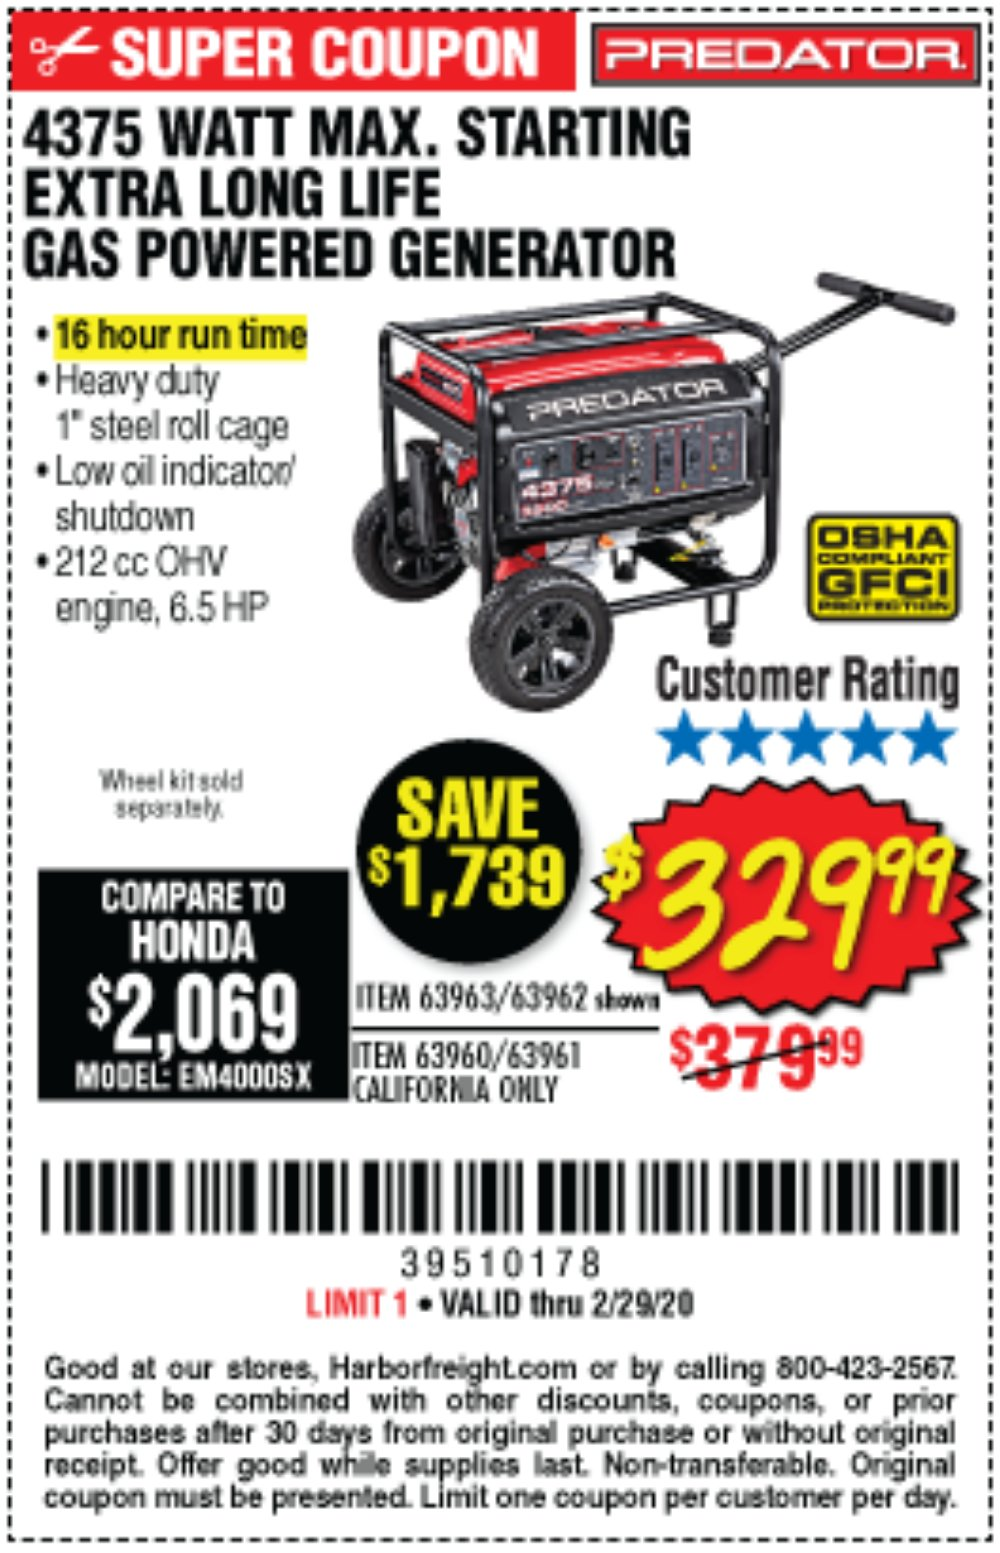 Harbor Freight Coupon, HF Coupons - 4375 Max Starting/3500 Running Watts, 6.5 Hp (212cc) Gas Generator